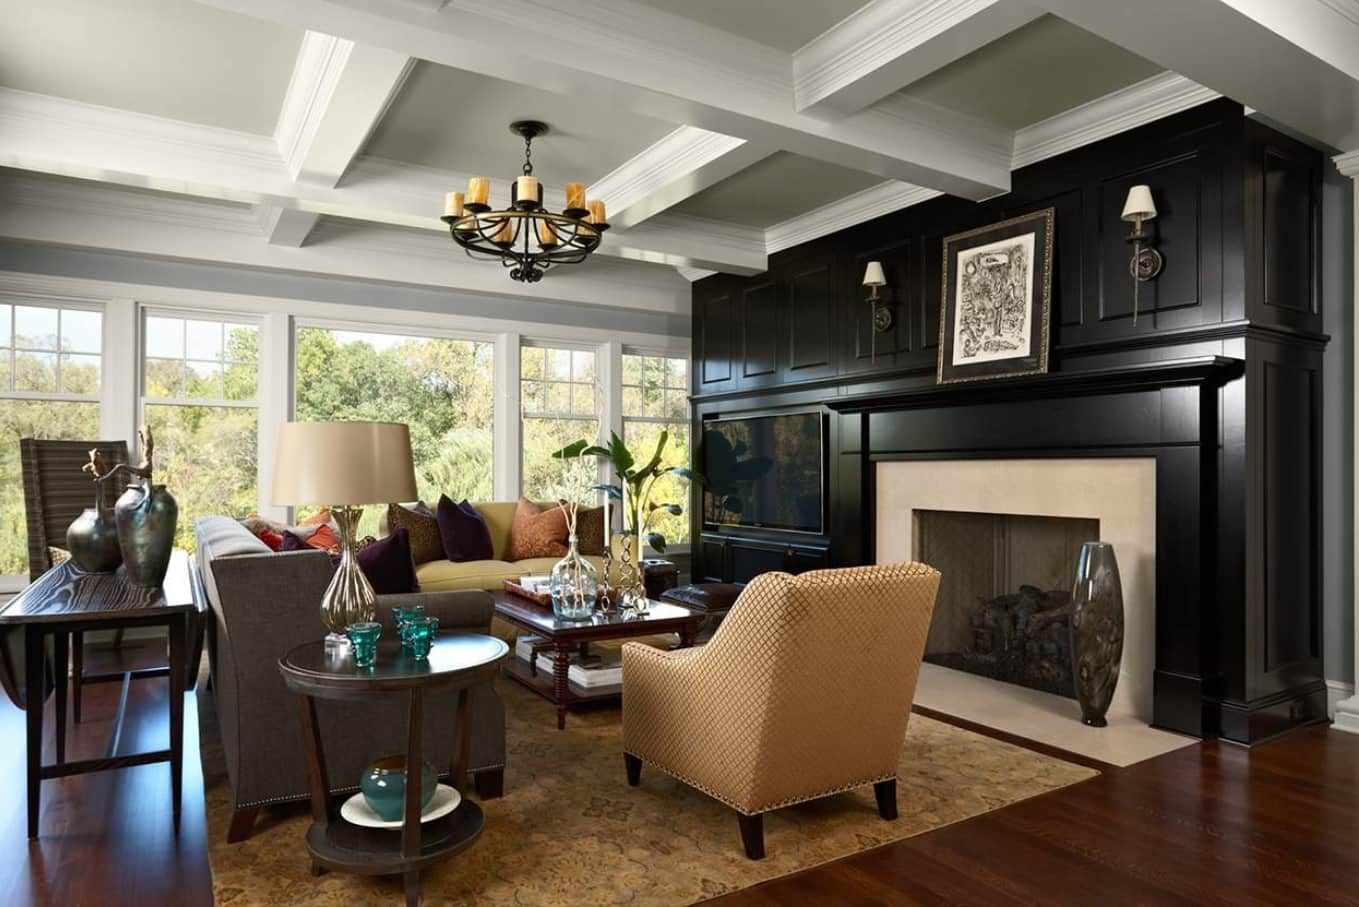 White coffered ceiling for spacious Classic designed room with beige furniture and black accent wall